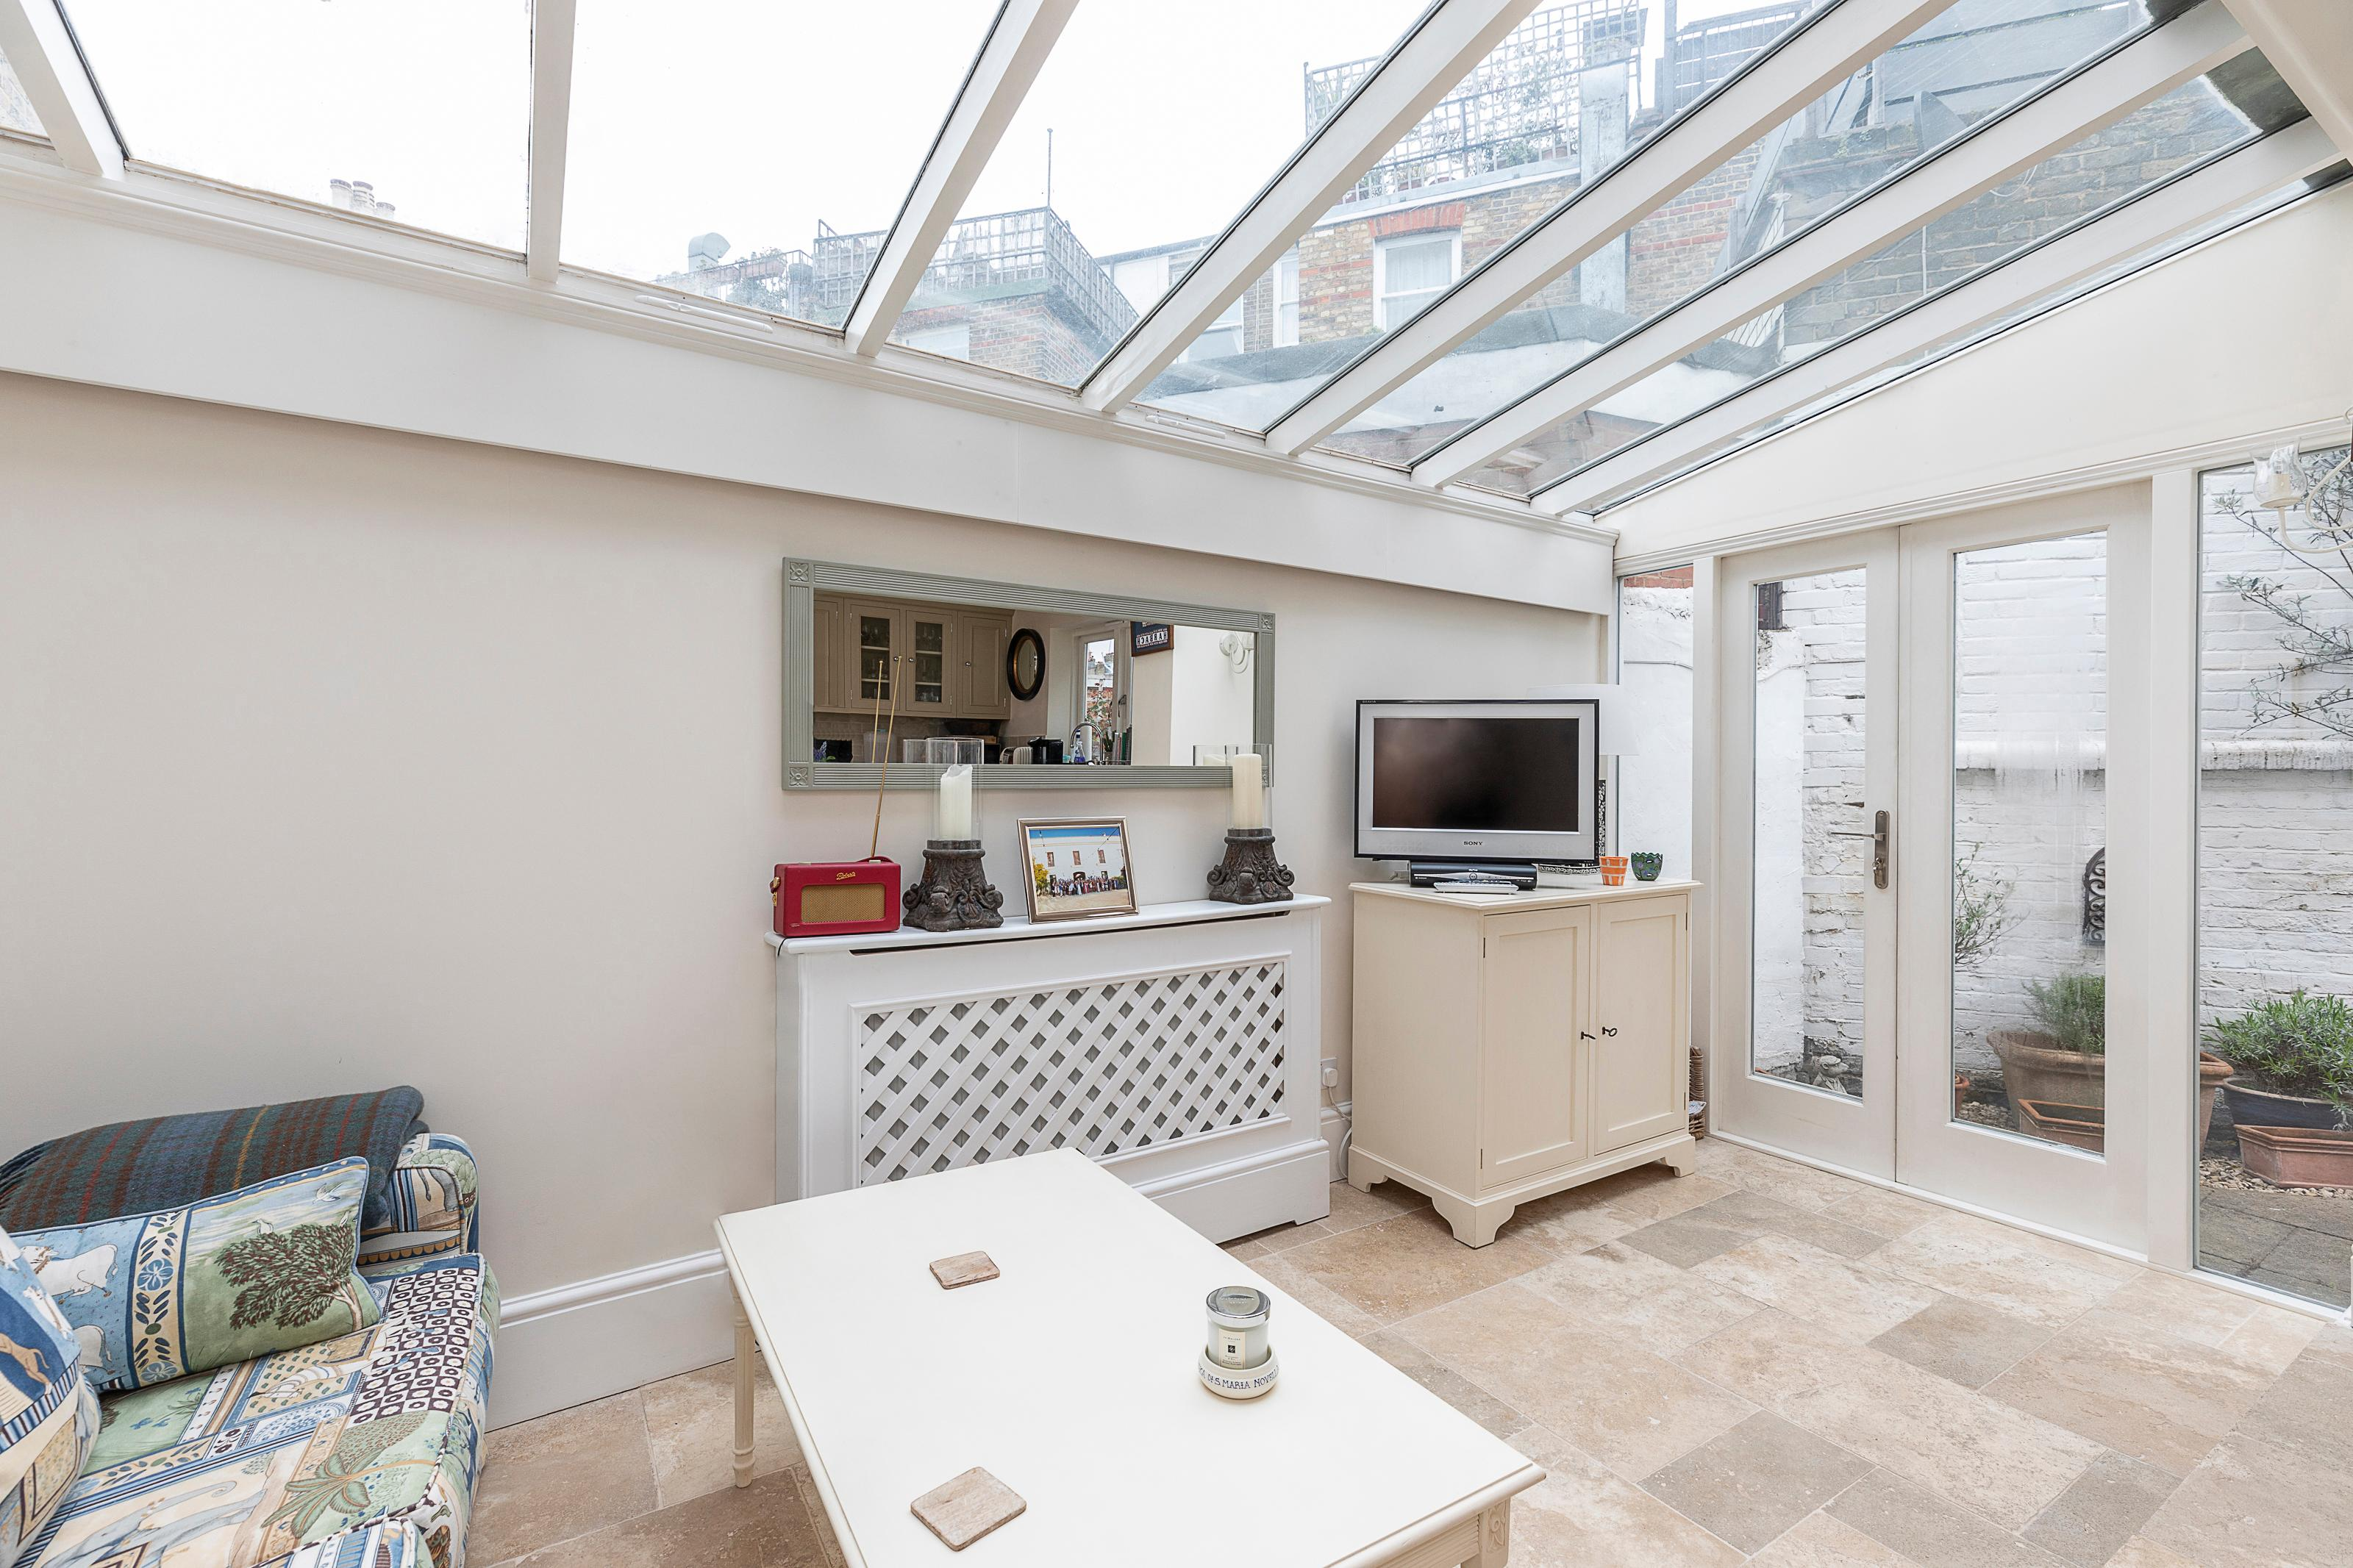 Property Image 2 - Contemporary 2 BR flat in Fulham w/ patio